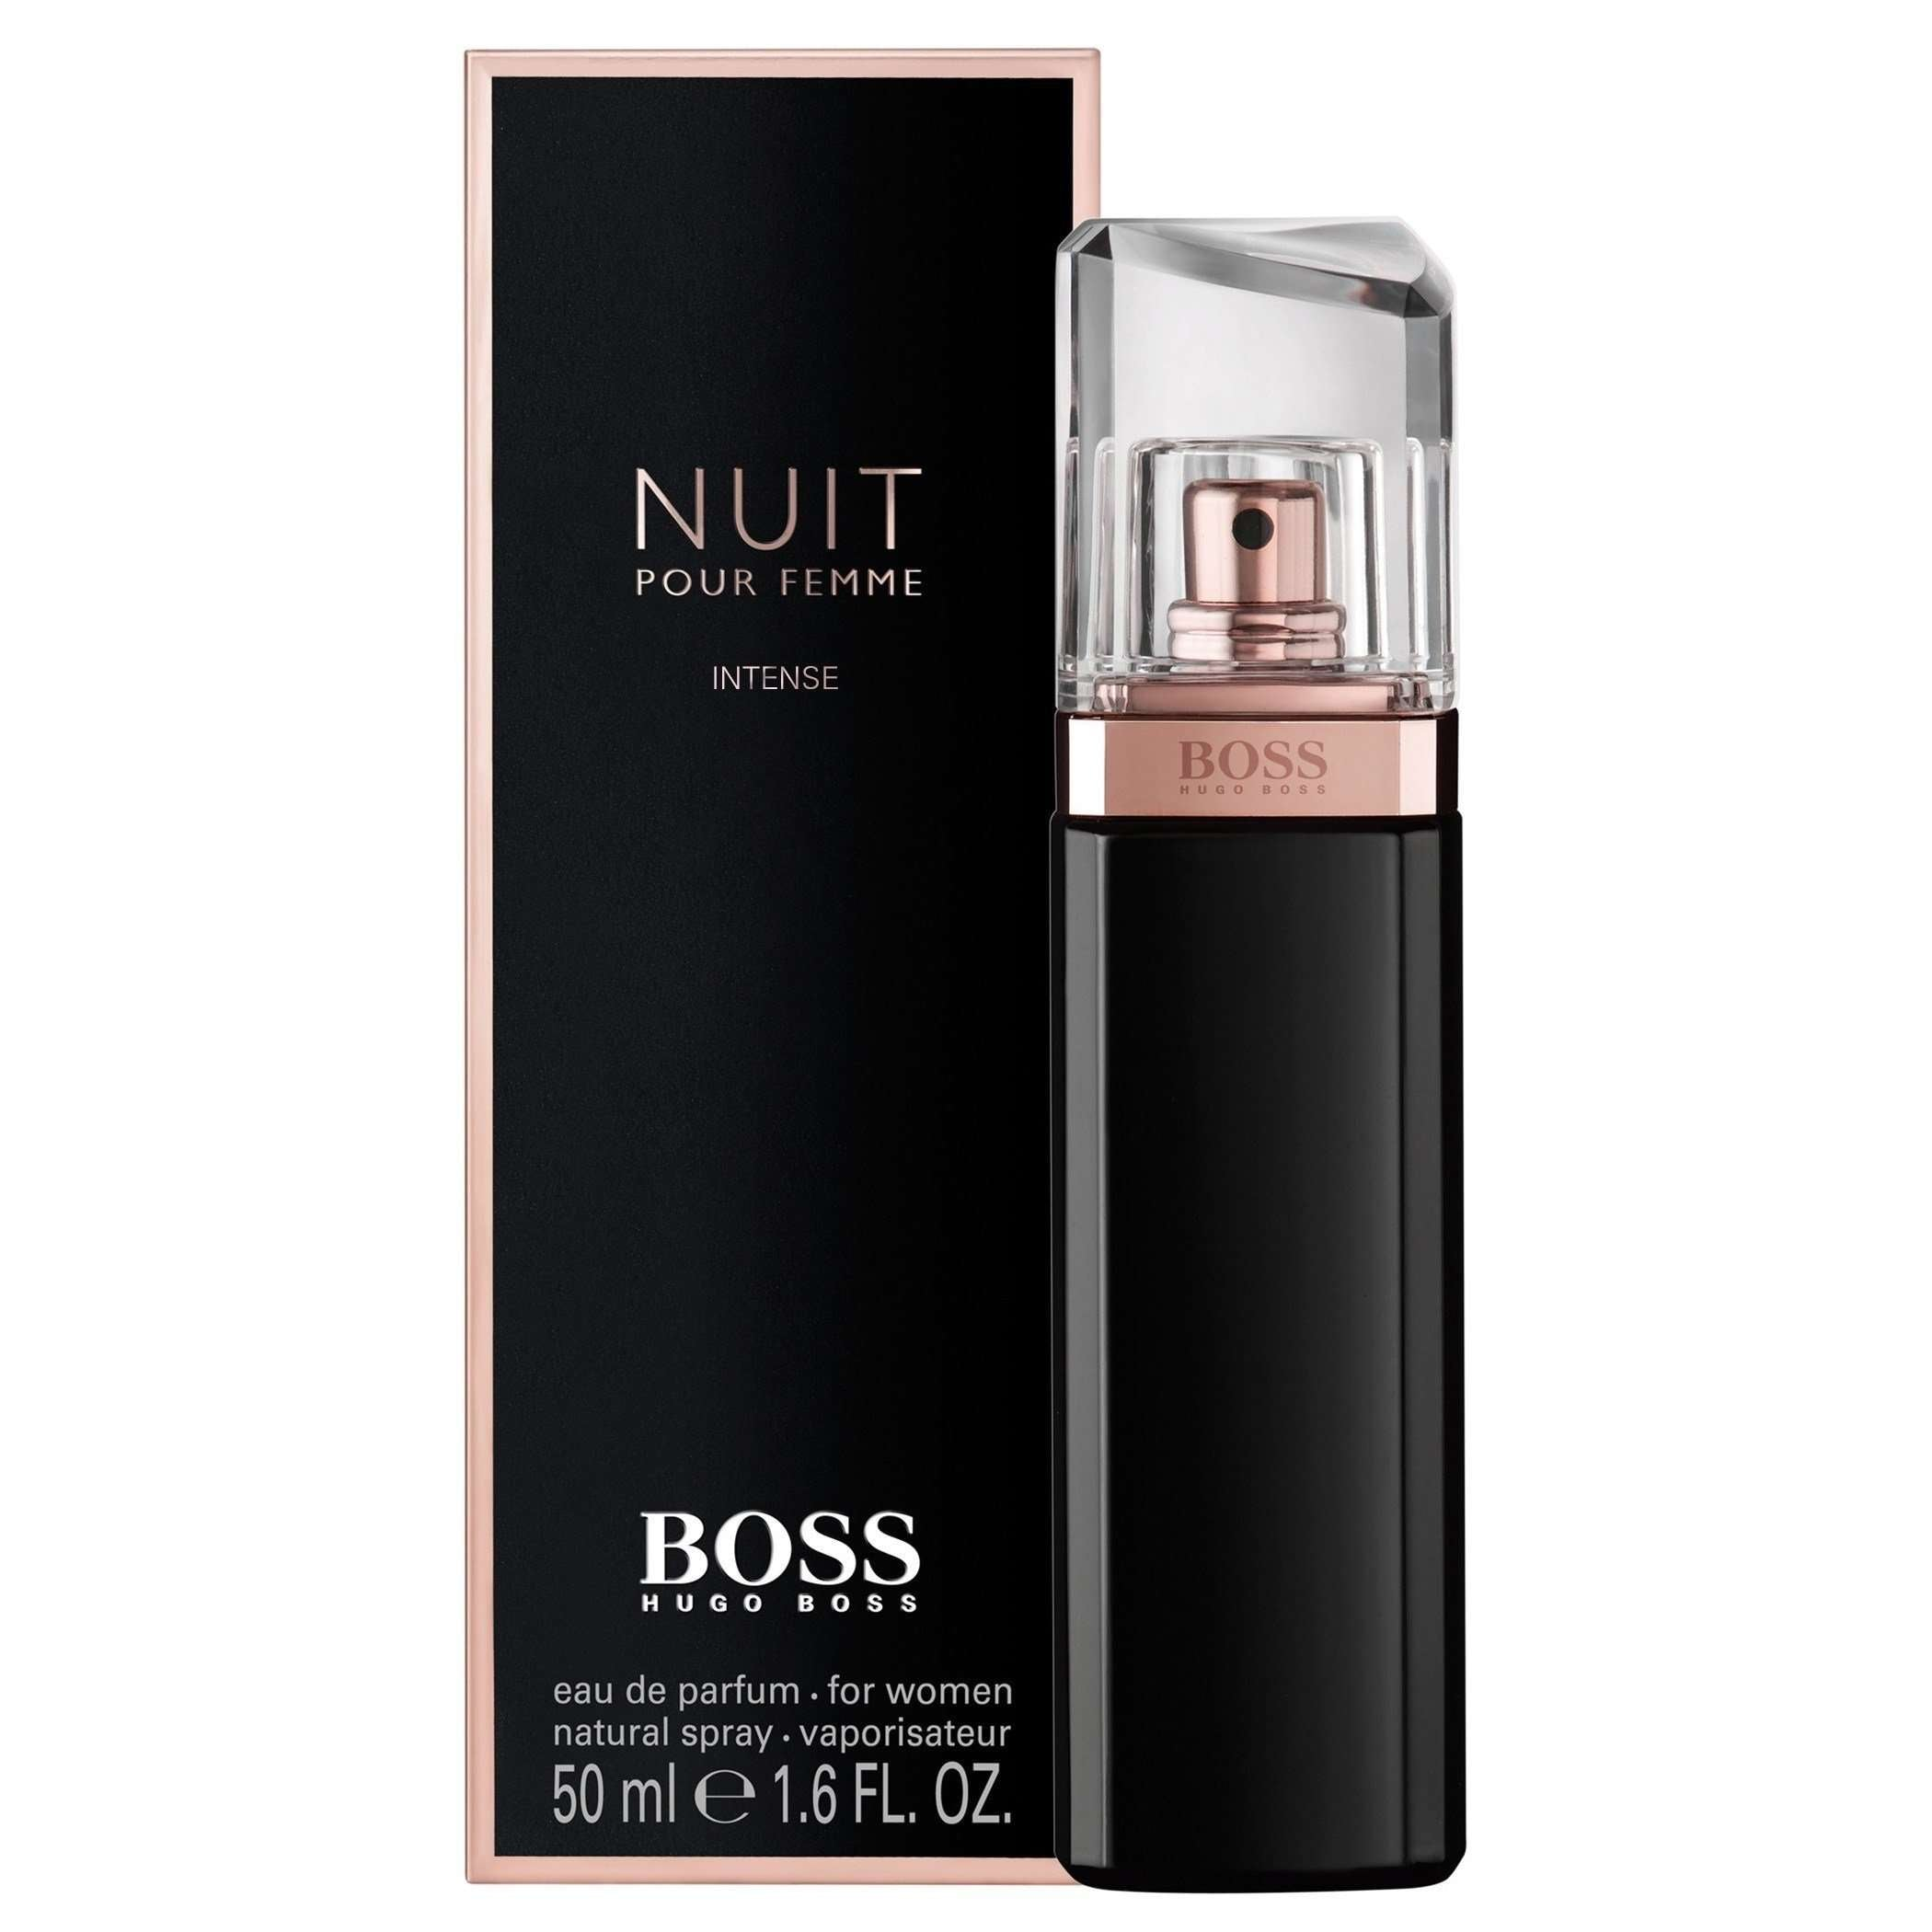 81727b4458c8 HUGO BOSS Perfumes in Canada from - Perfumeonline.ca